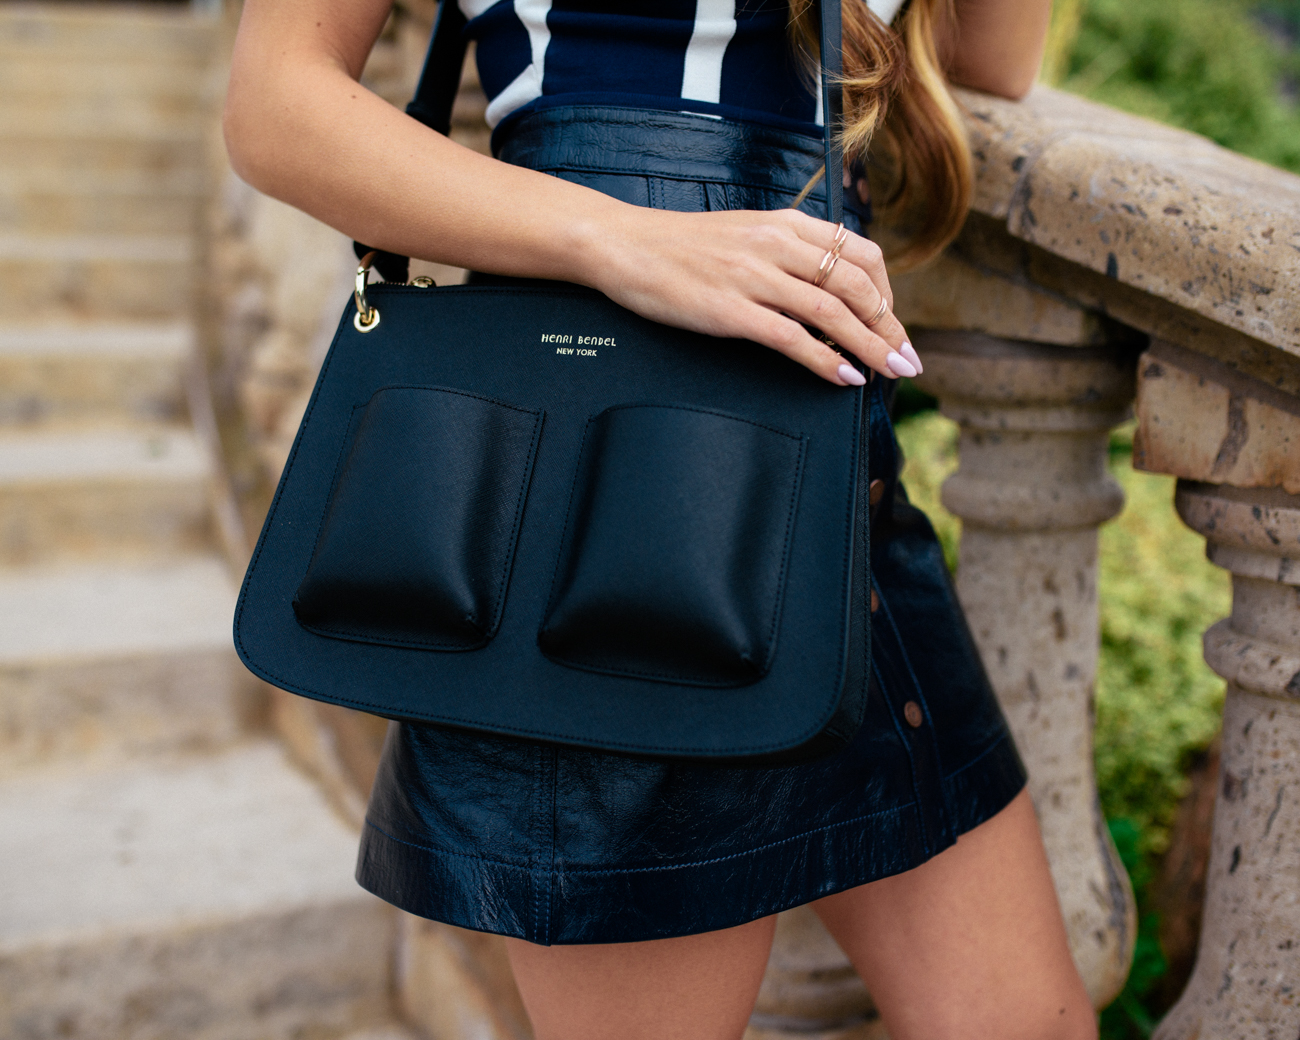 henri bendel black crossbody